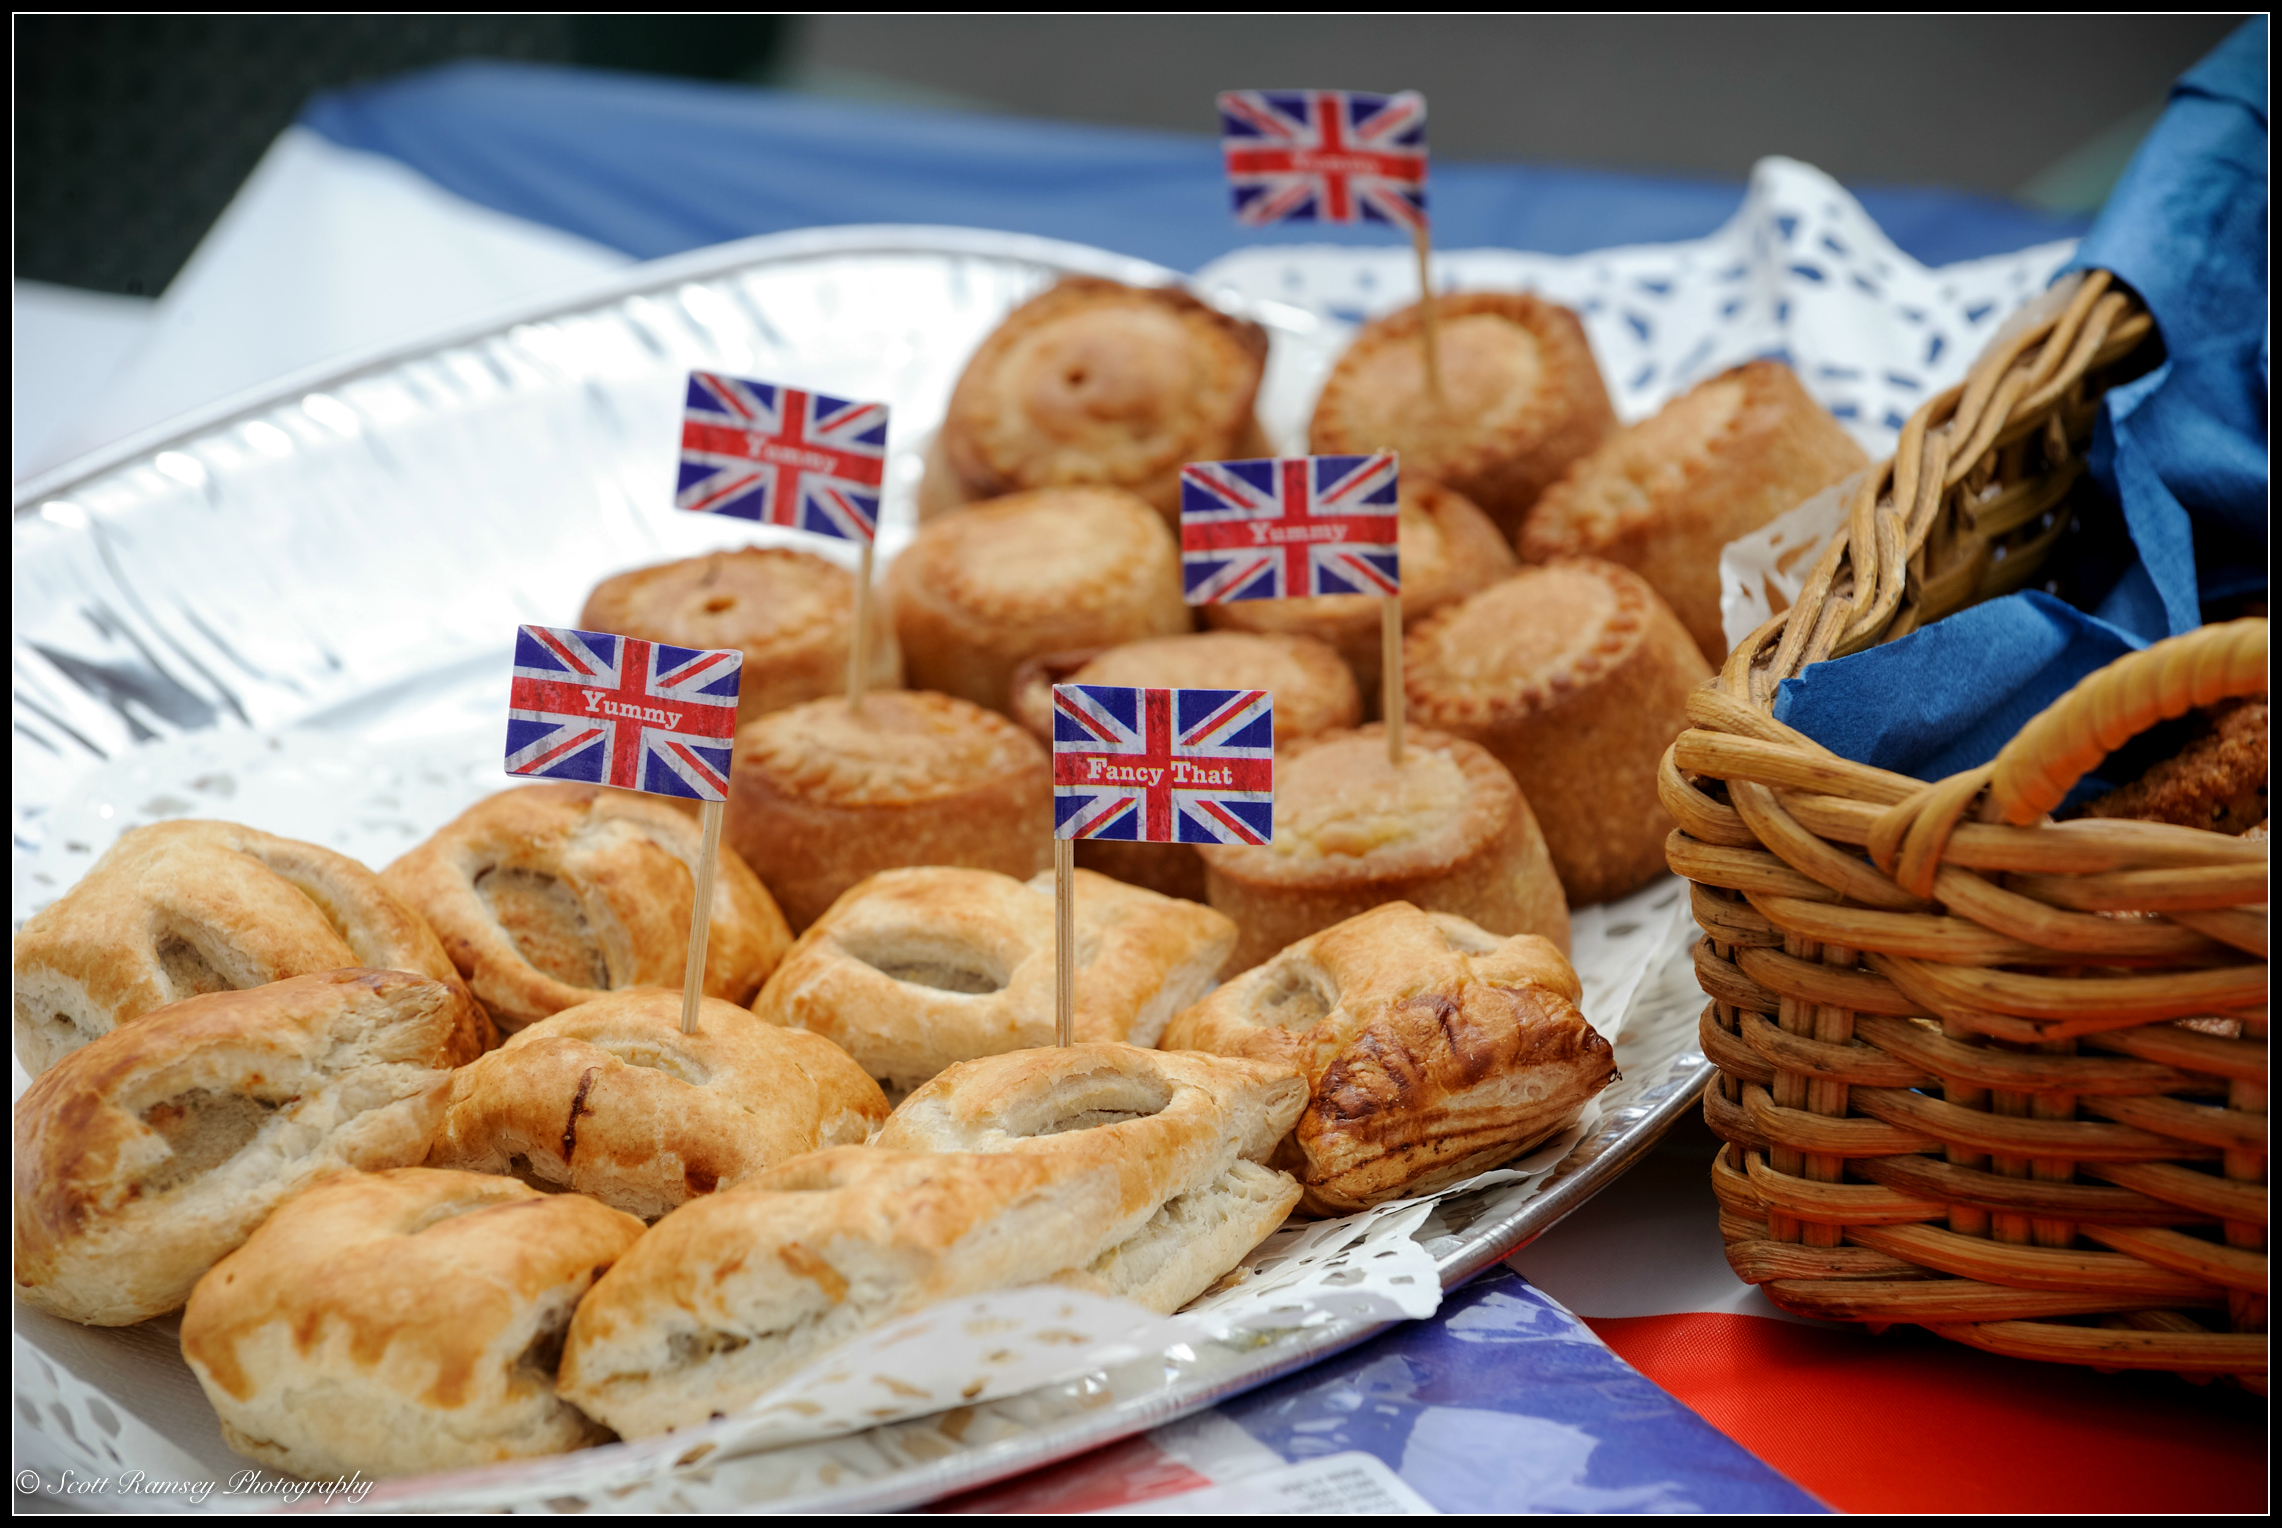 Mini sausage rolls and pork pies with union jack flags stuck into them on a table at theVE day 70th anniversary street party in Southsea, Portsmouth, UK.© Scott Ramsey Photography.